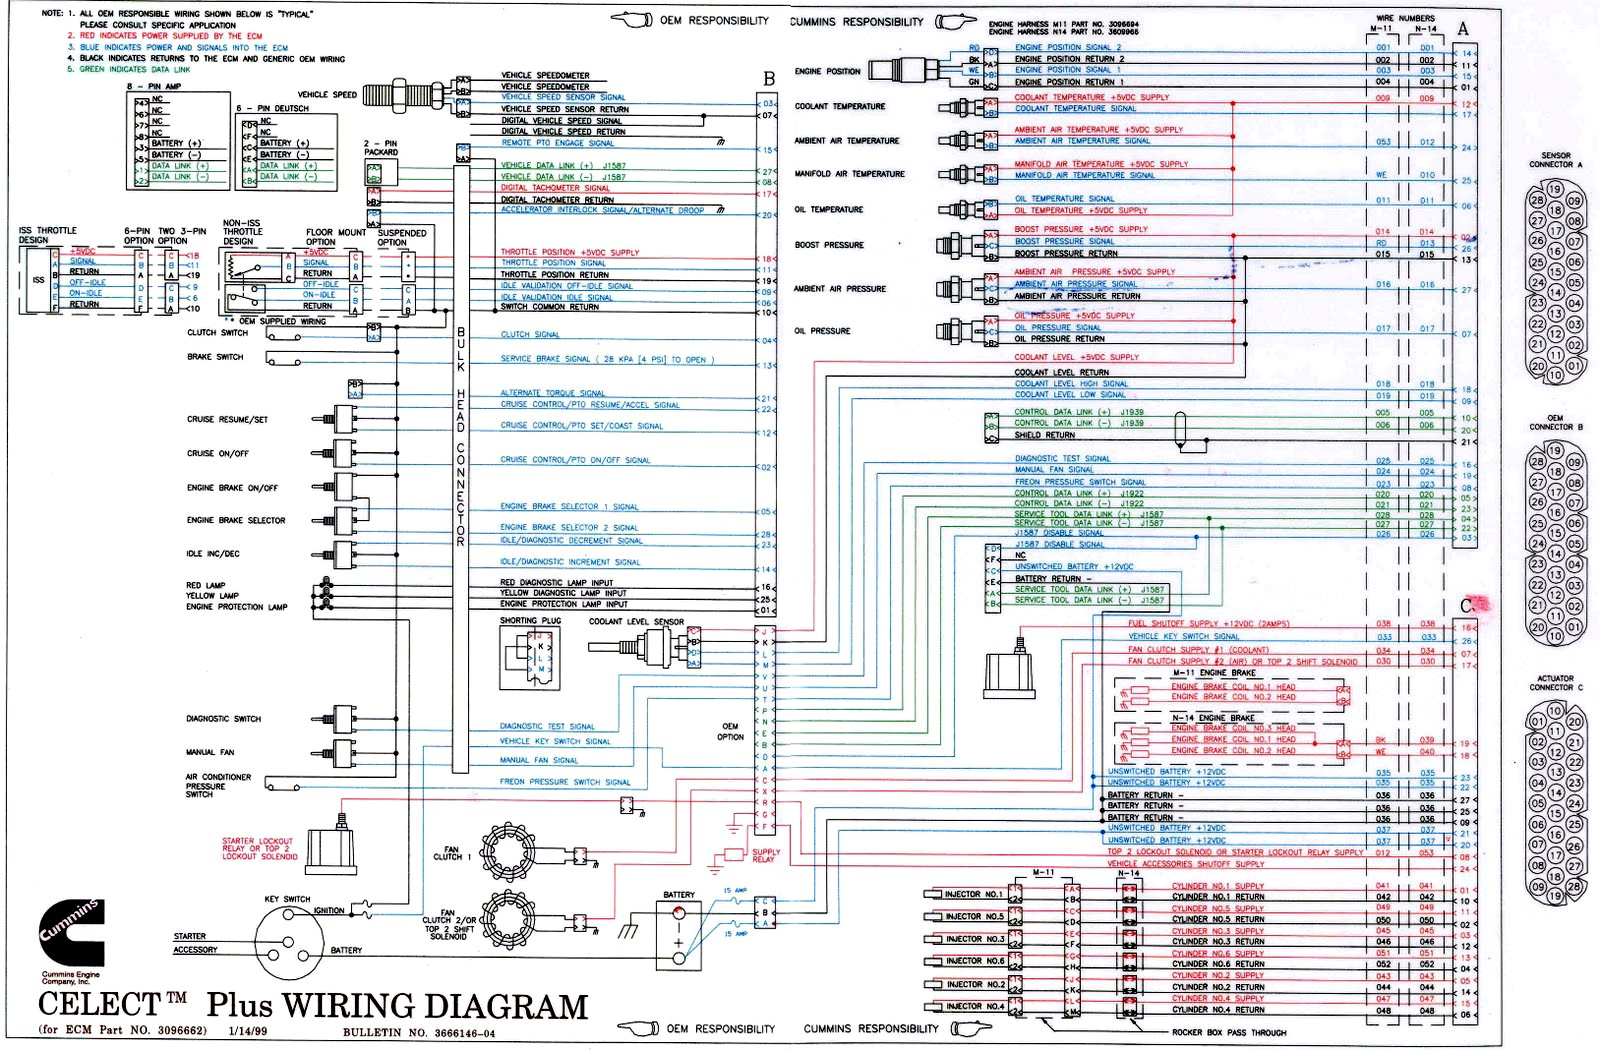 cat 3126 engine wiring diagram cat 70 pin ecm wiring diagram solidfonts cat c12 ecm wiring diagram ewiring